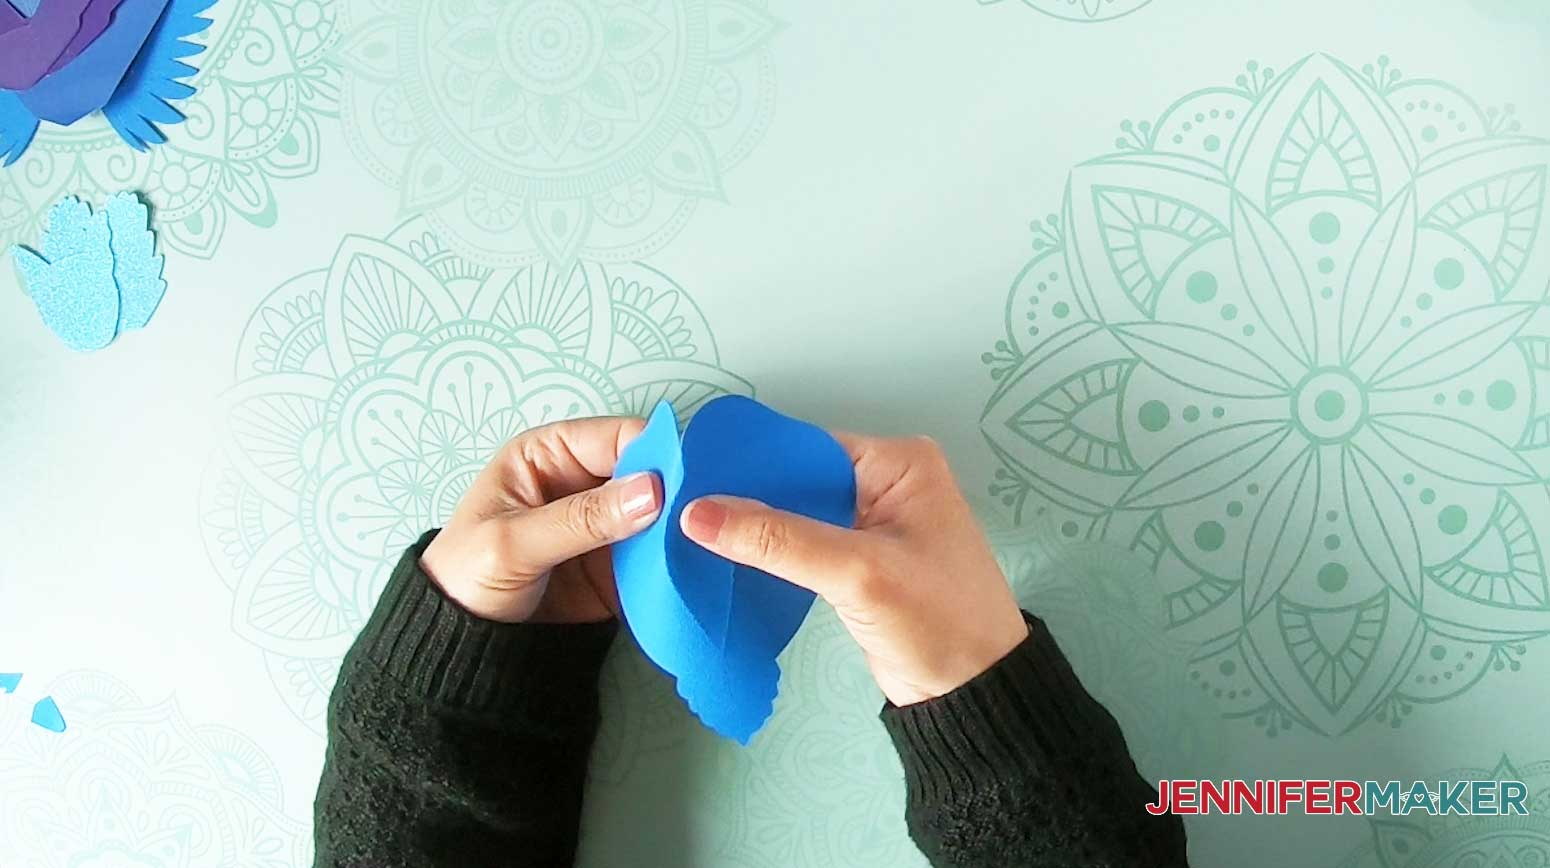 Fold the paper bird body into a 3D shape